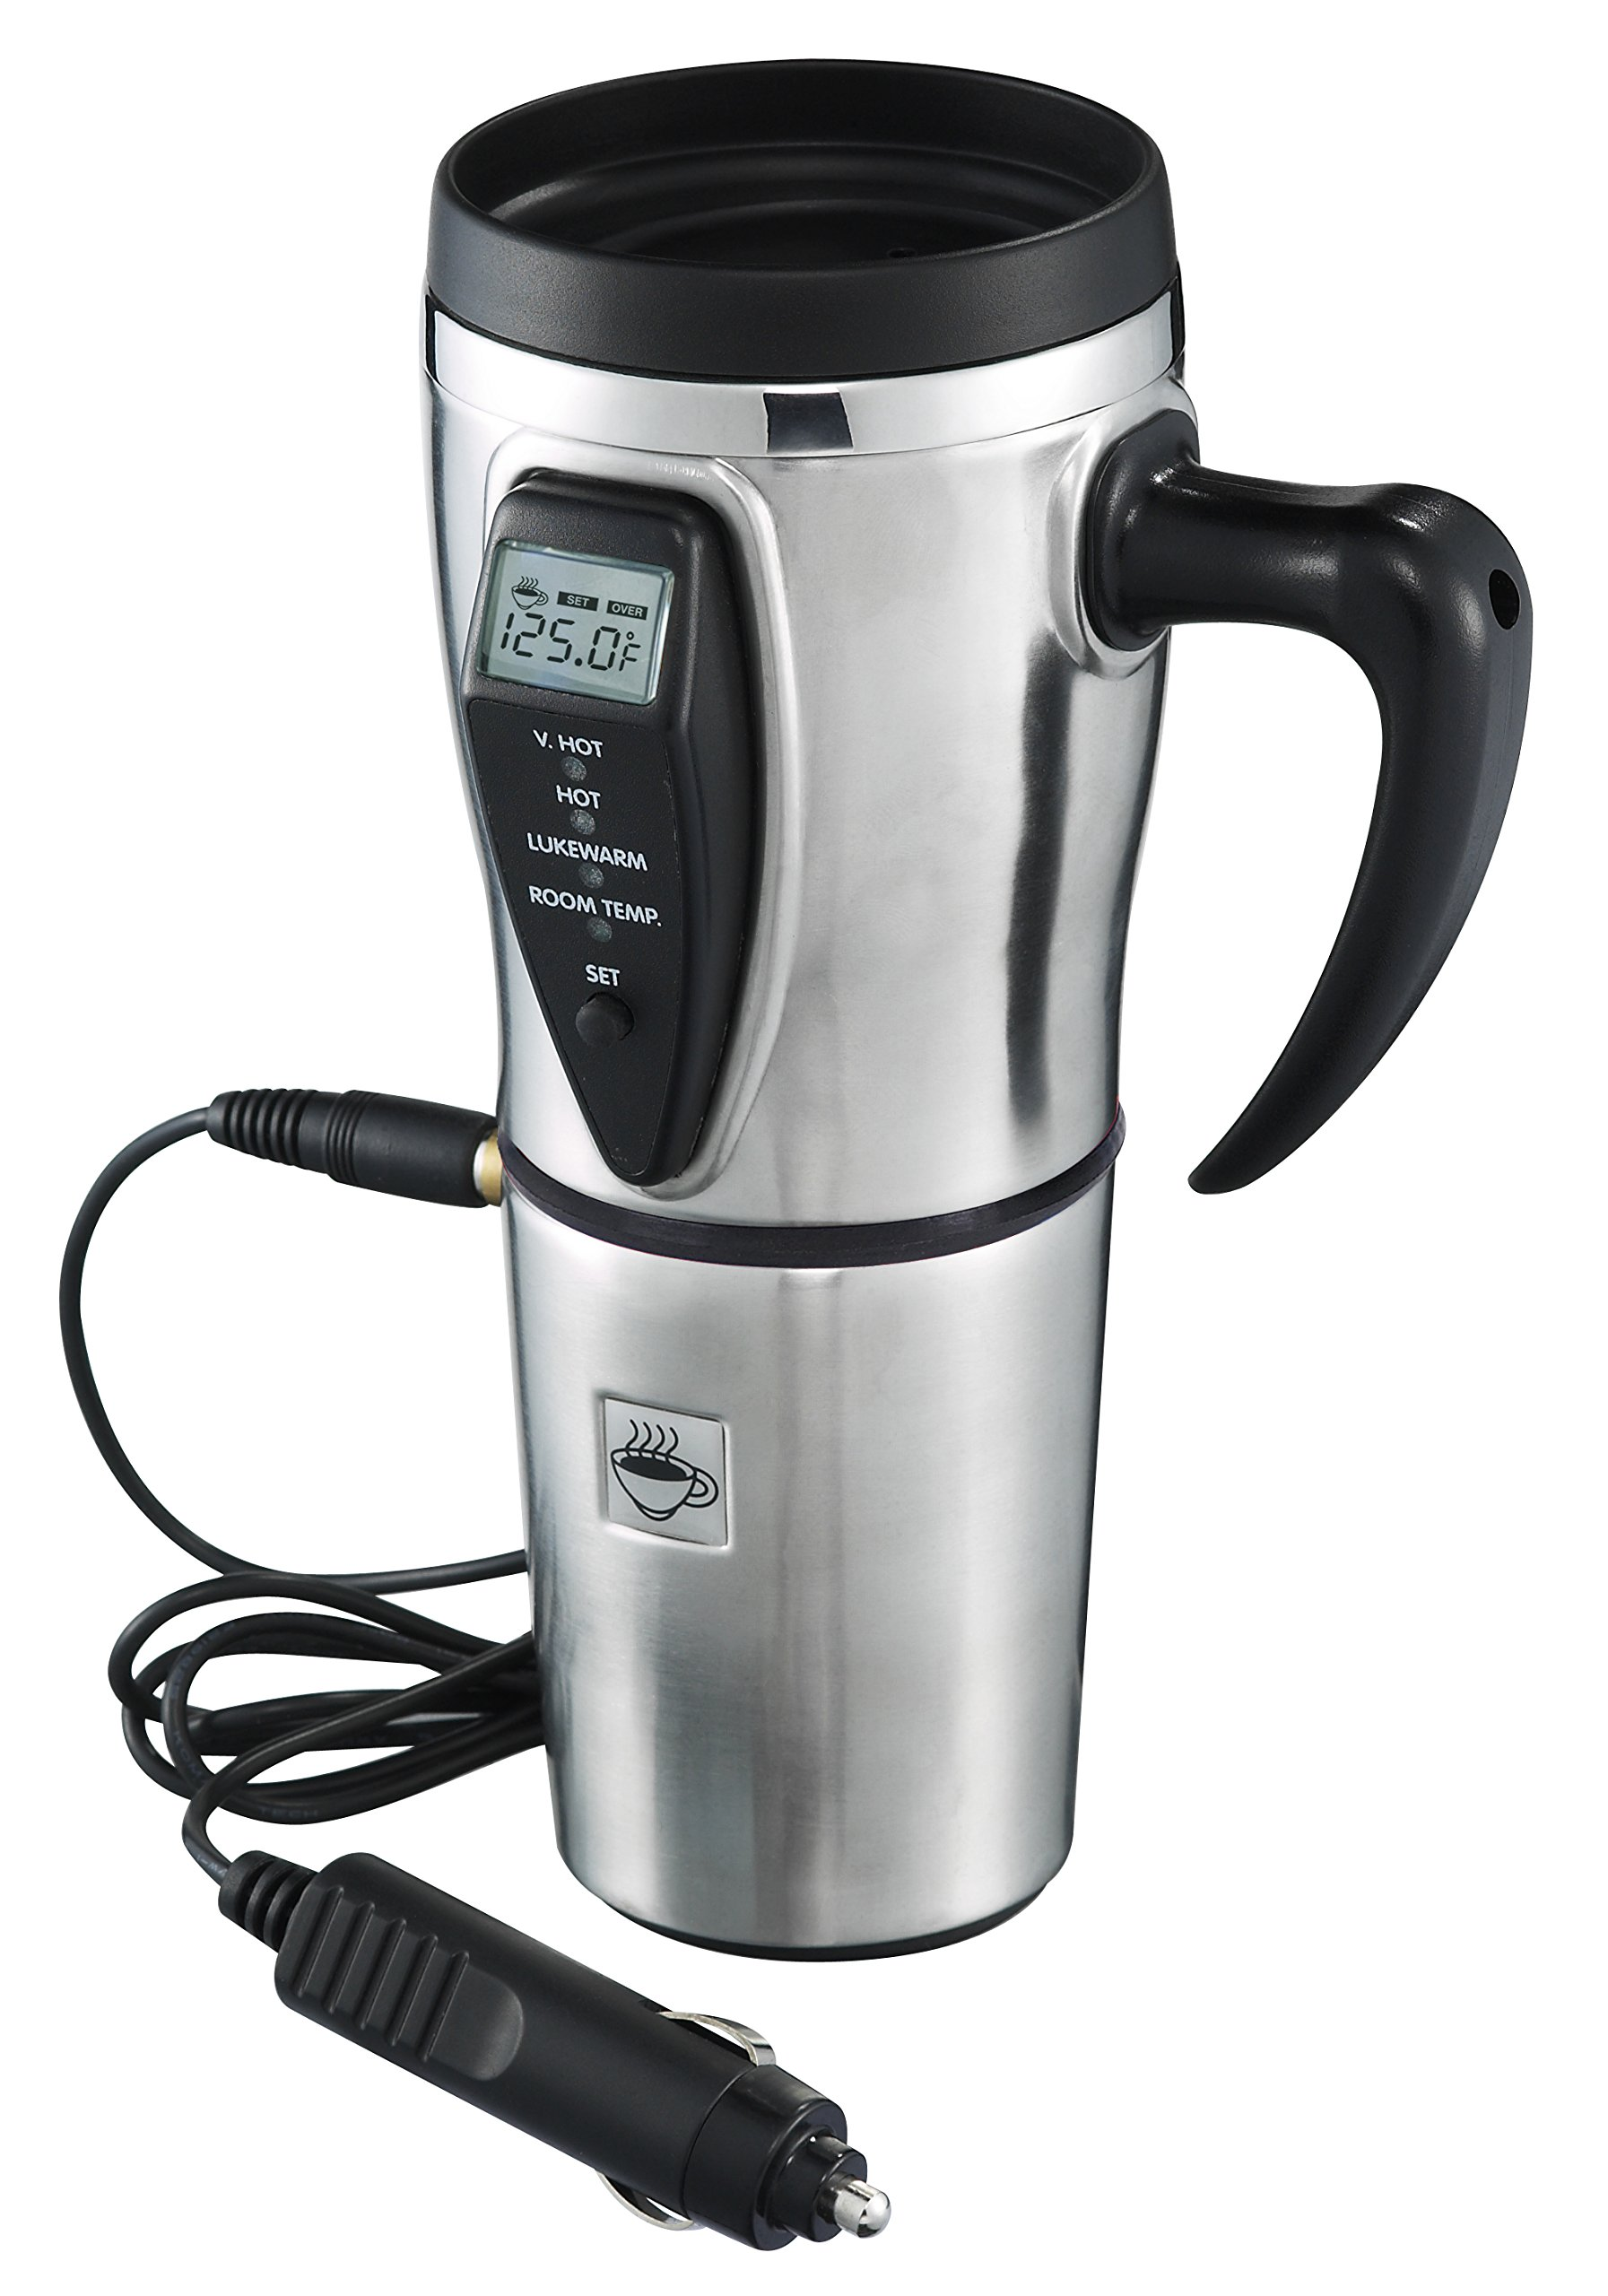 Stainless Steel Electric Smart Mug With Temperature